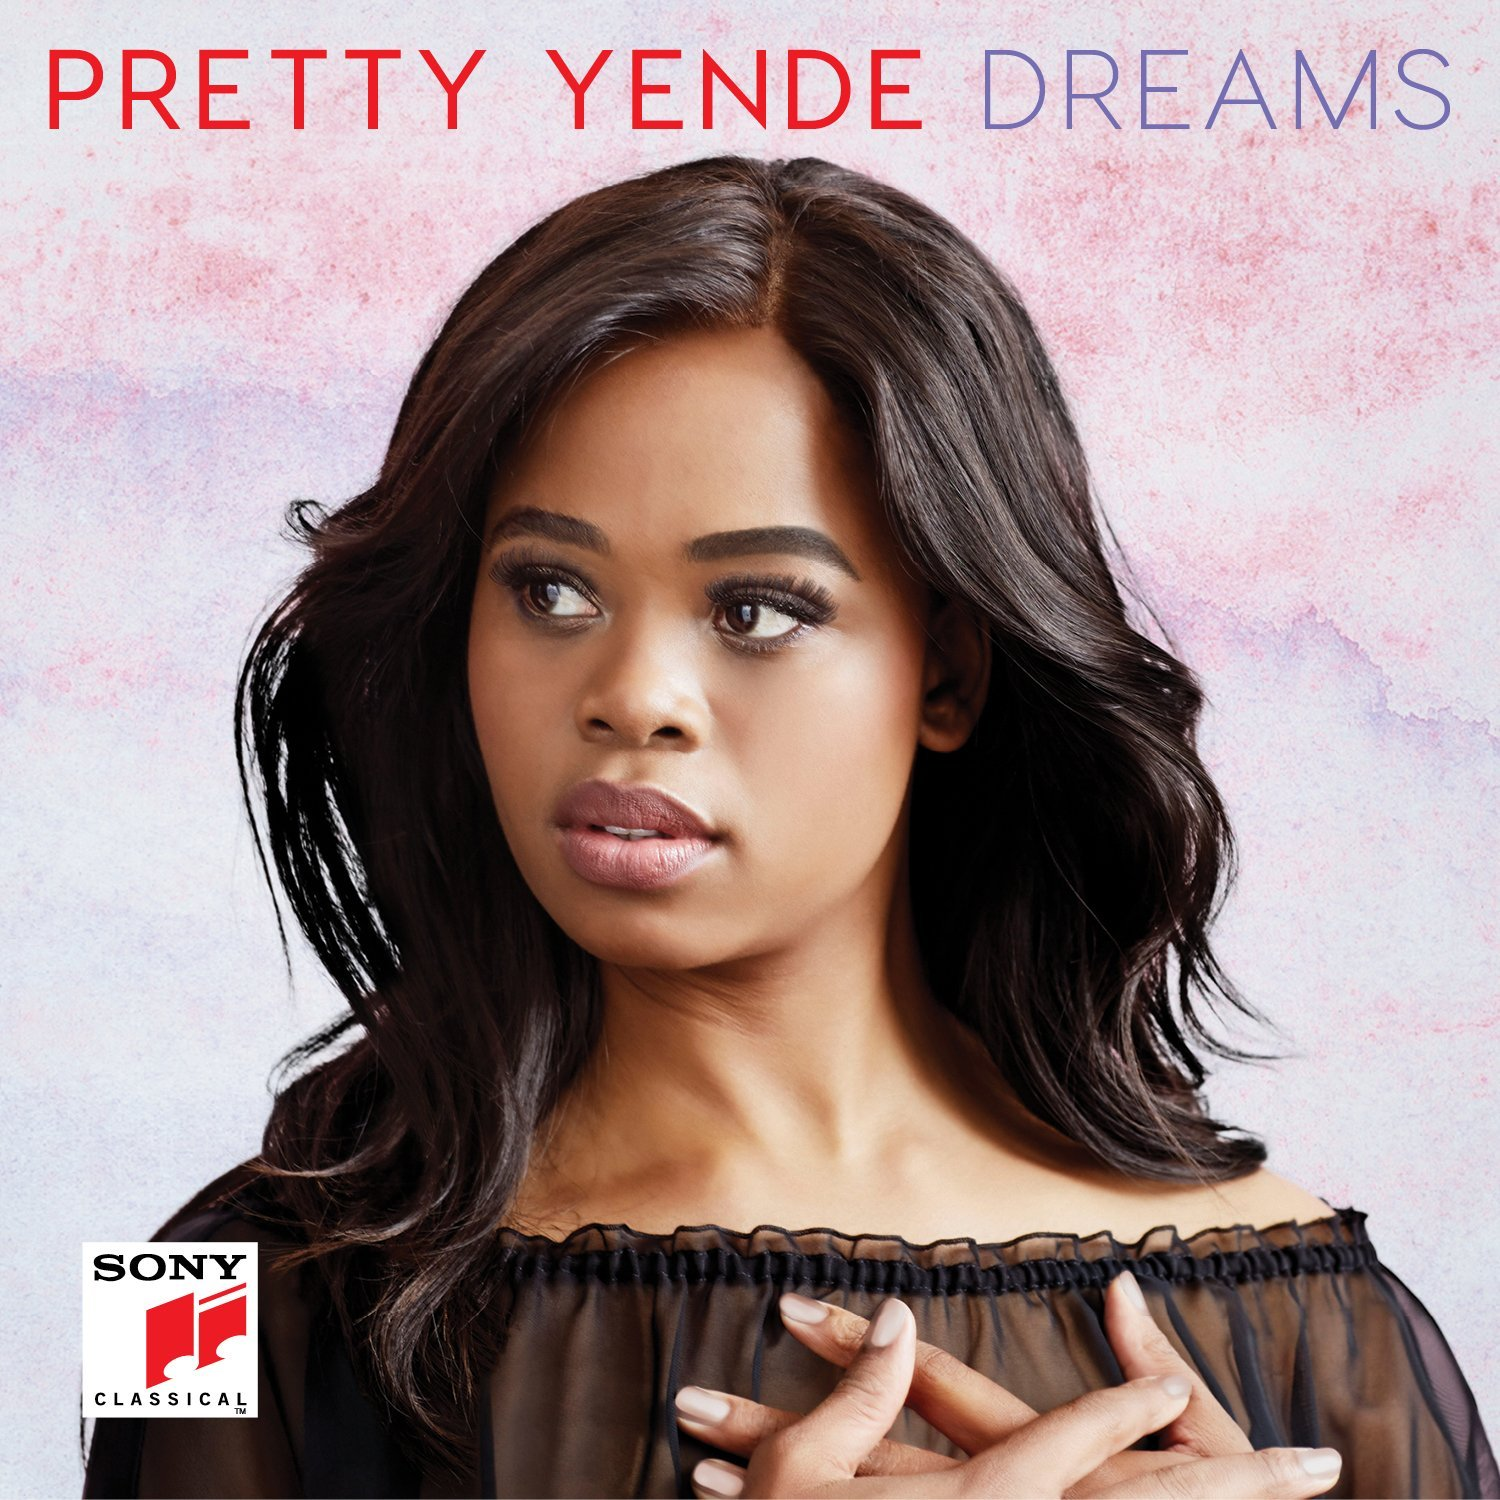 Pretty Yende: Dreams